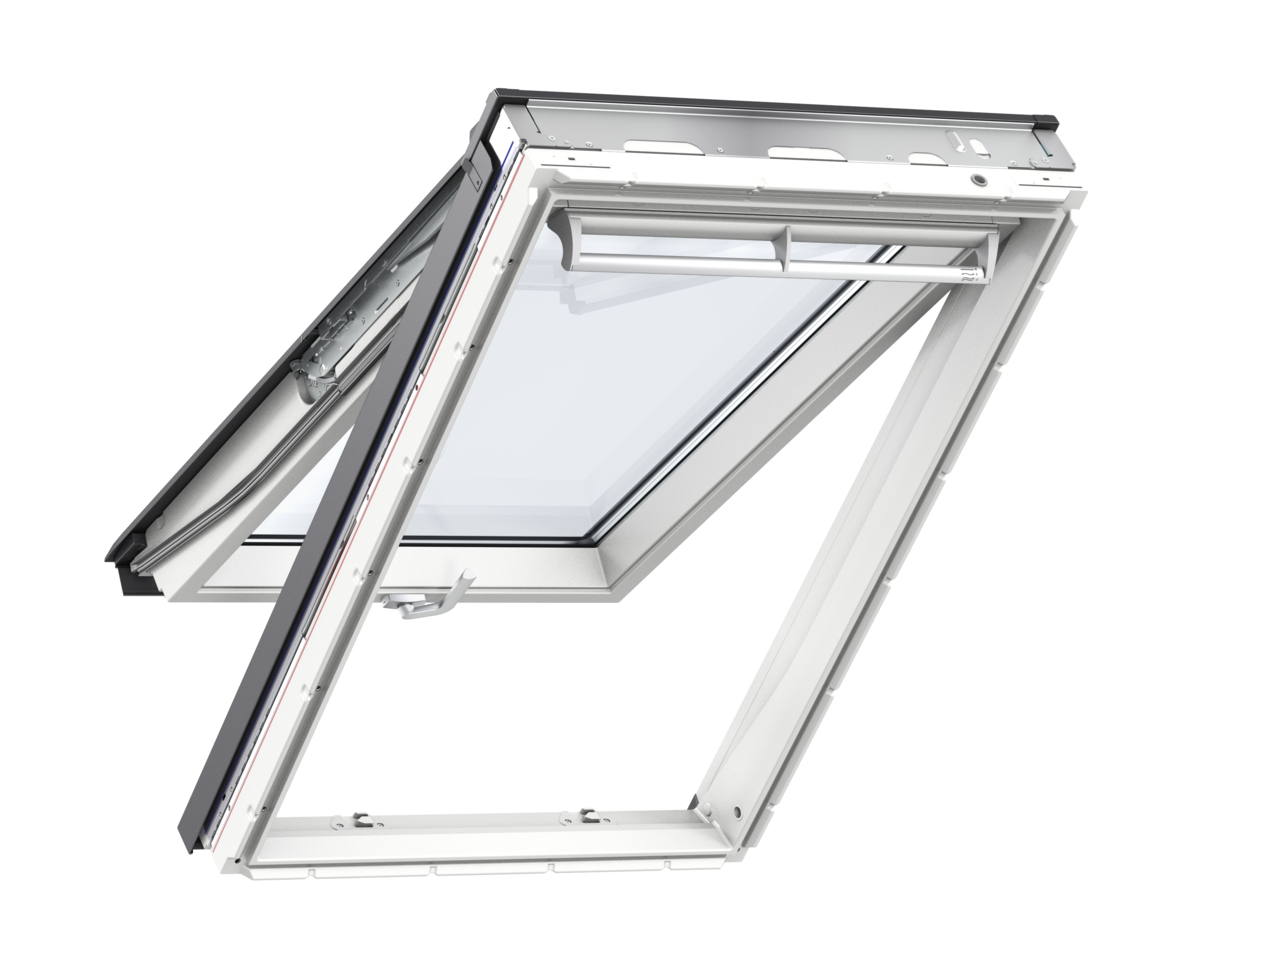 Velux GPU SK06 1140 x 1180mm Top Hung 62Pane Roof Window - White Polyurethane